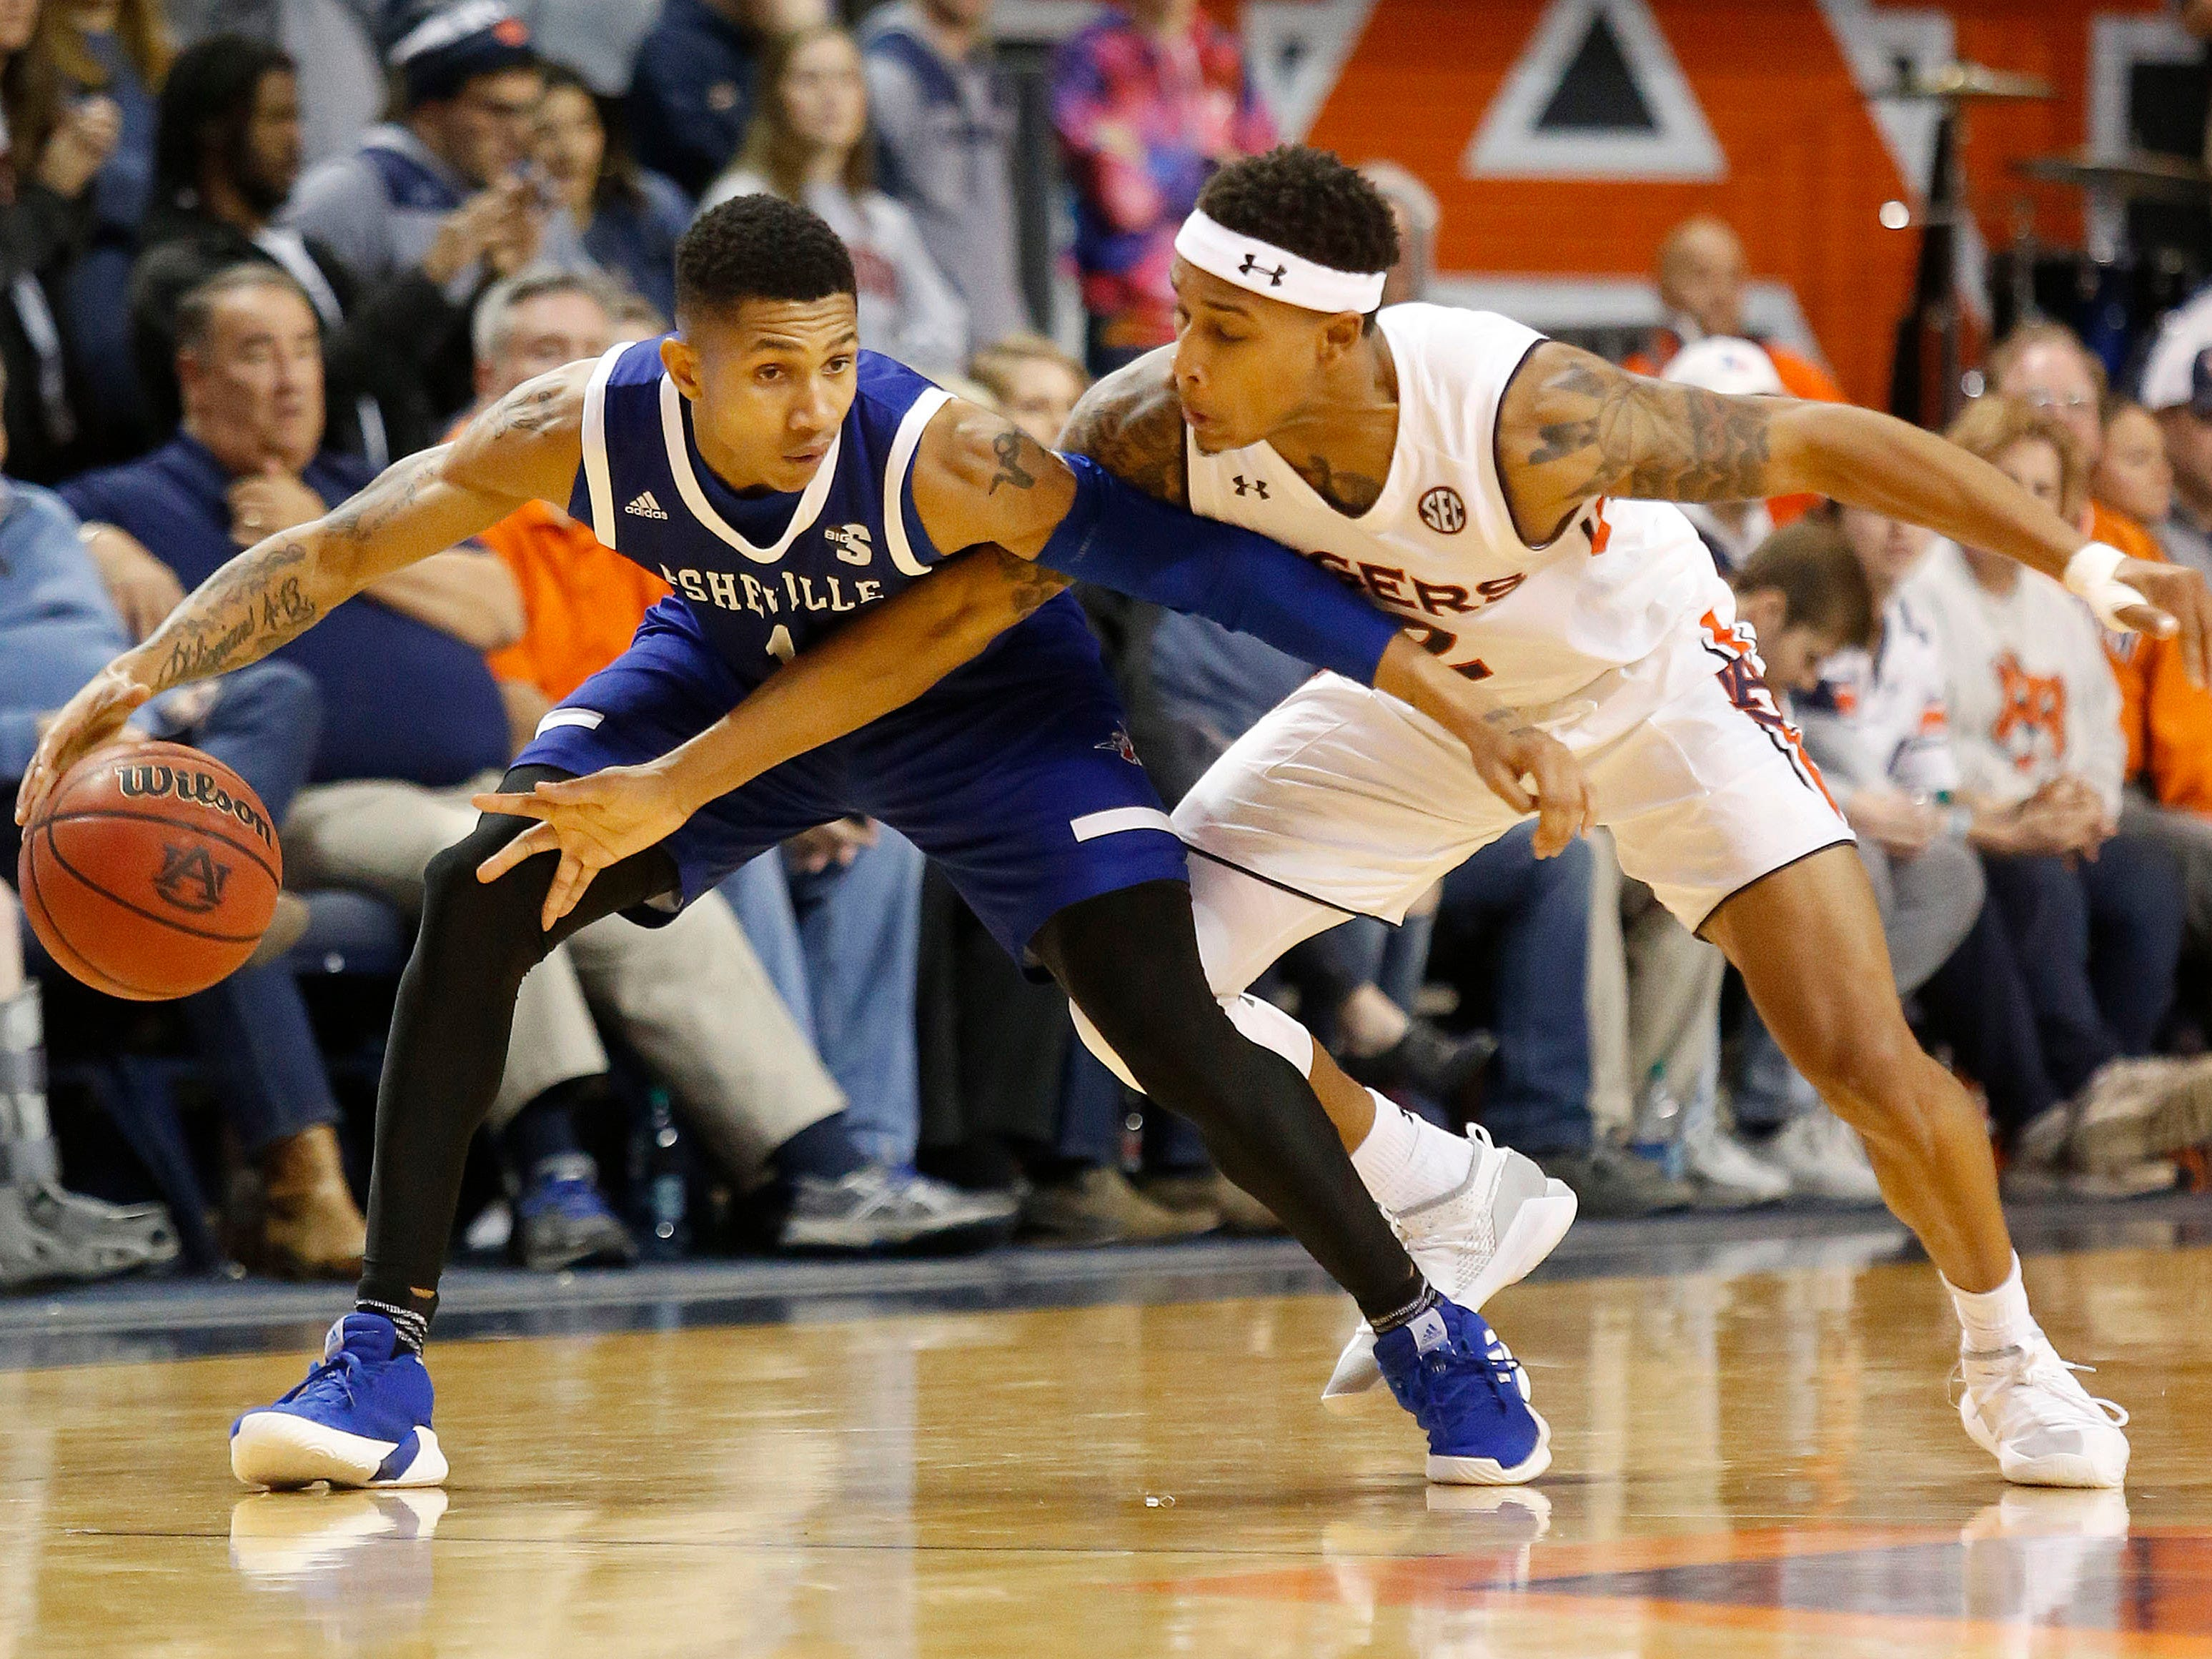 Auburn guard Bryce Brown (2) pressures UNC Asheville guard DeVon Baker (20) on Dec. 4, 2018, in Auburn, Ala.